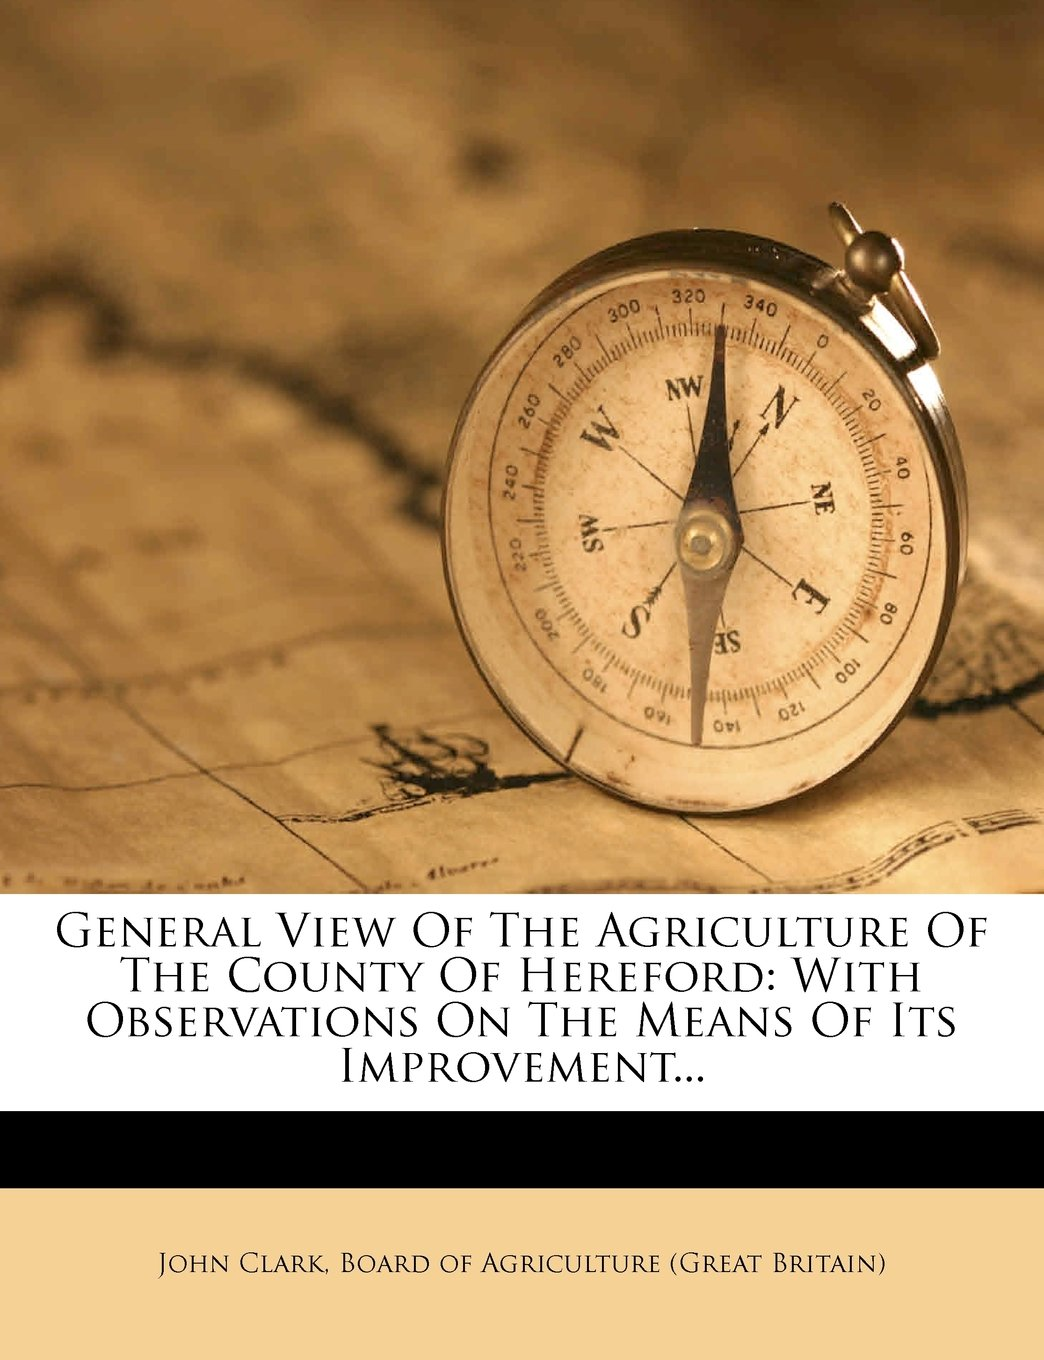 General View Of The Agriculture Of The County Of Hereford: With Observations On The Means Of Its Improvement... PDF